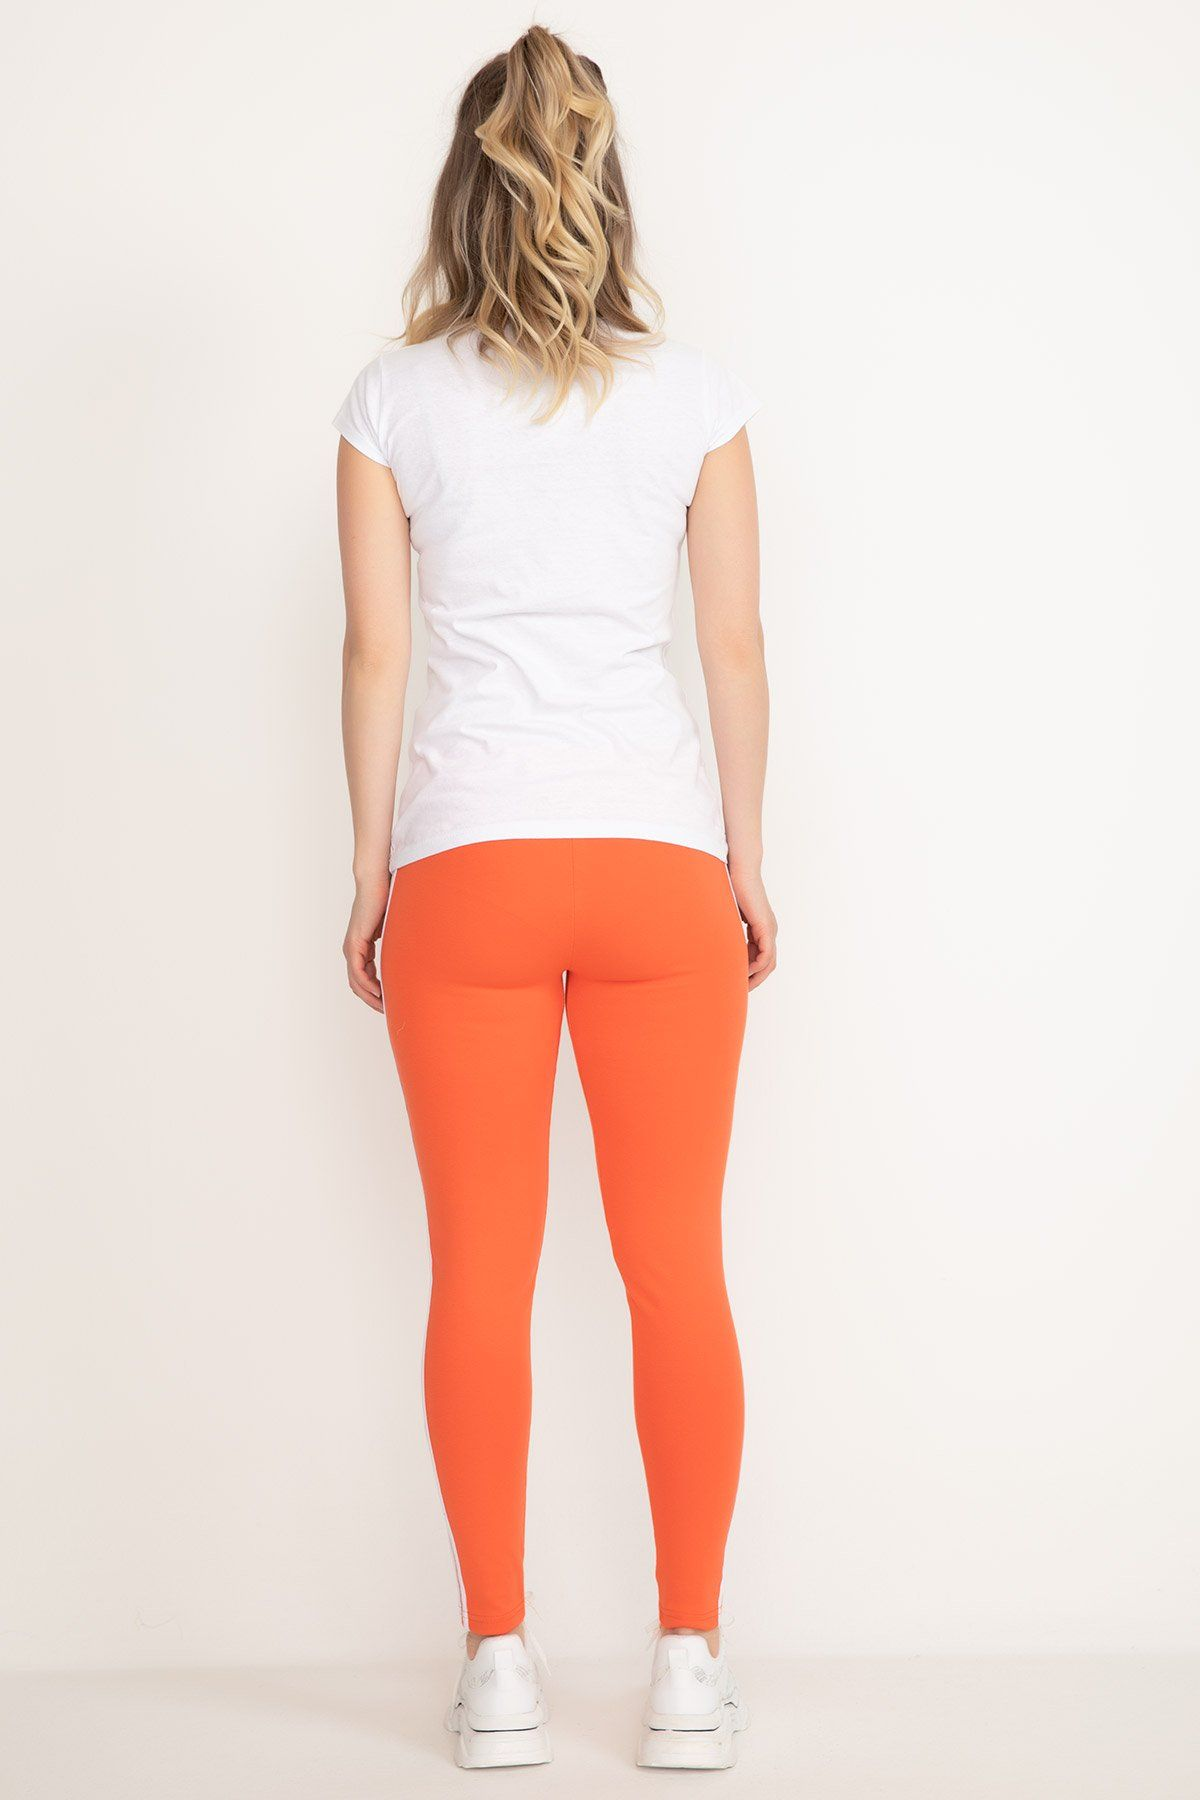 Tights-Orange